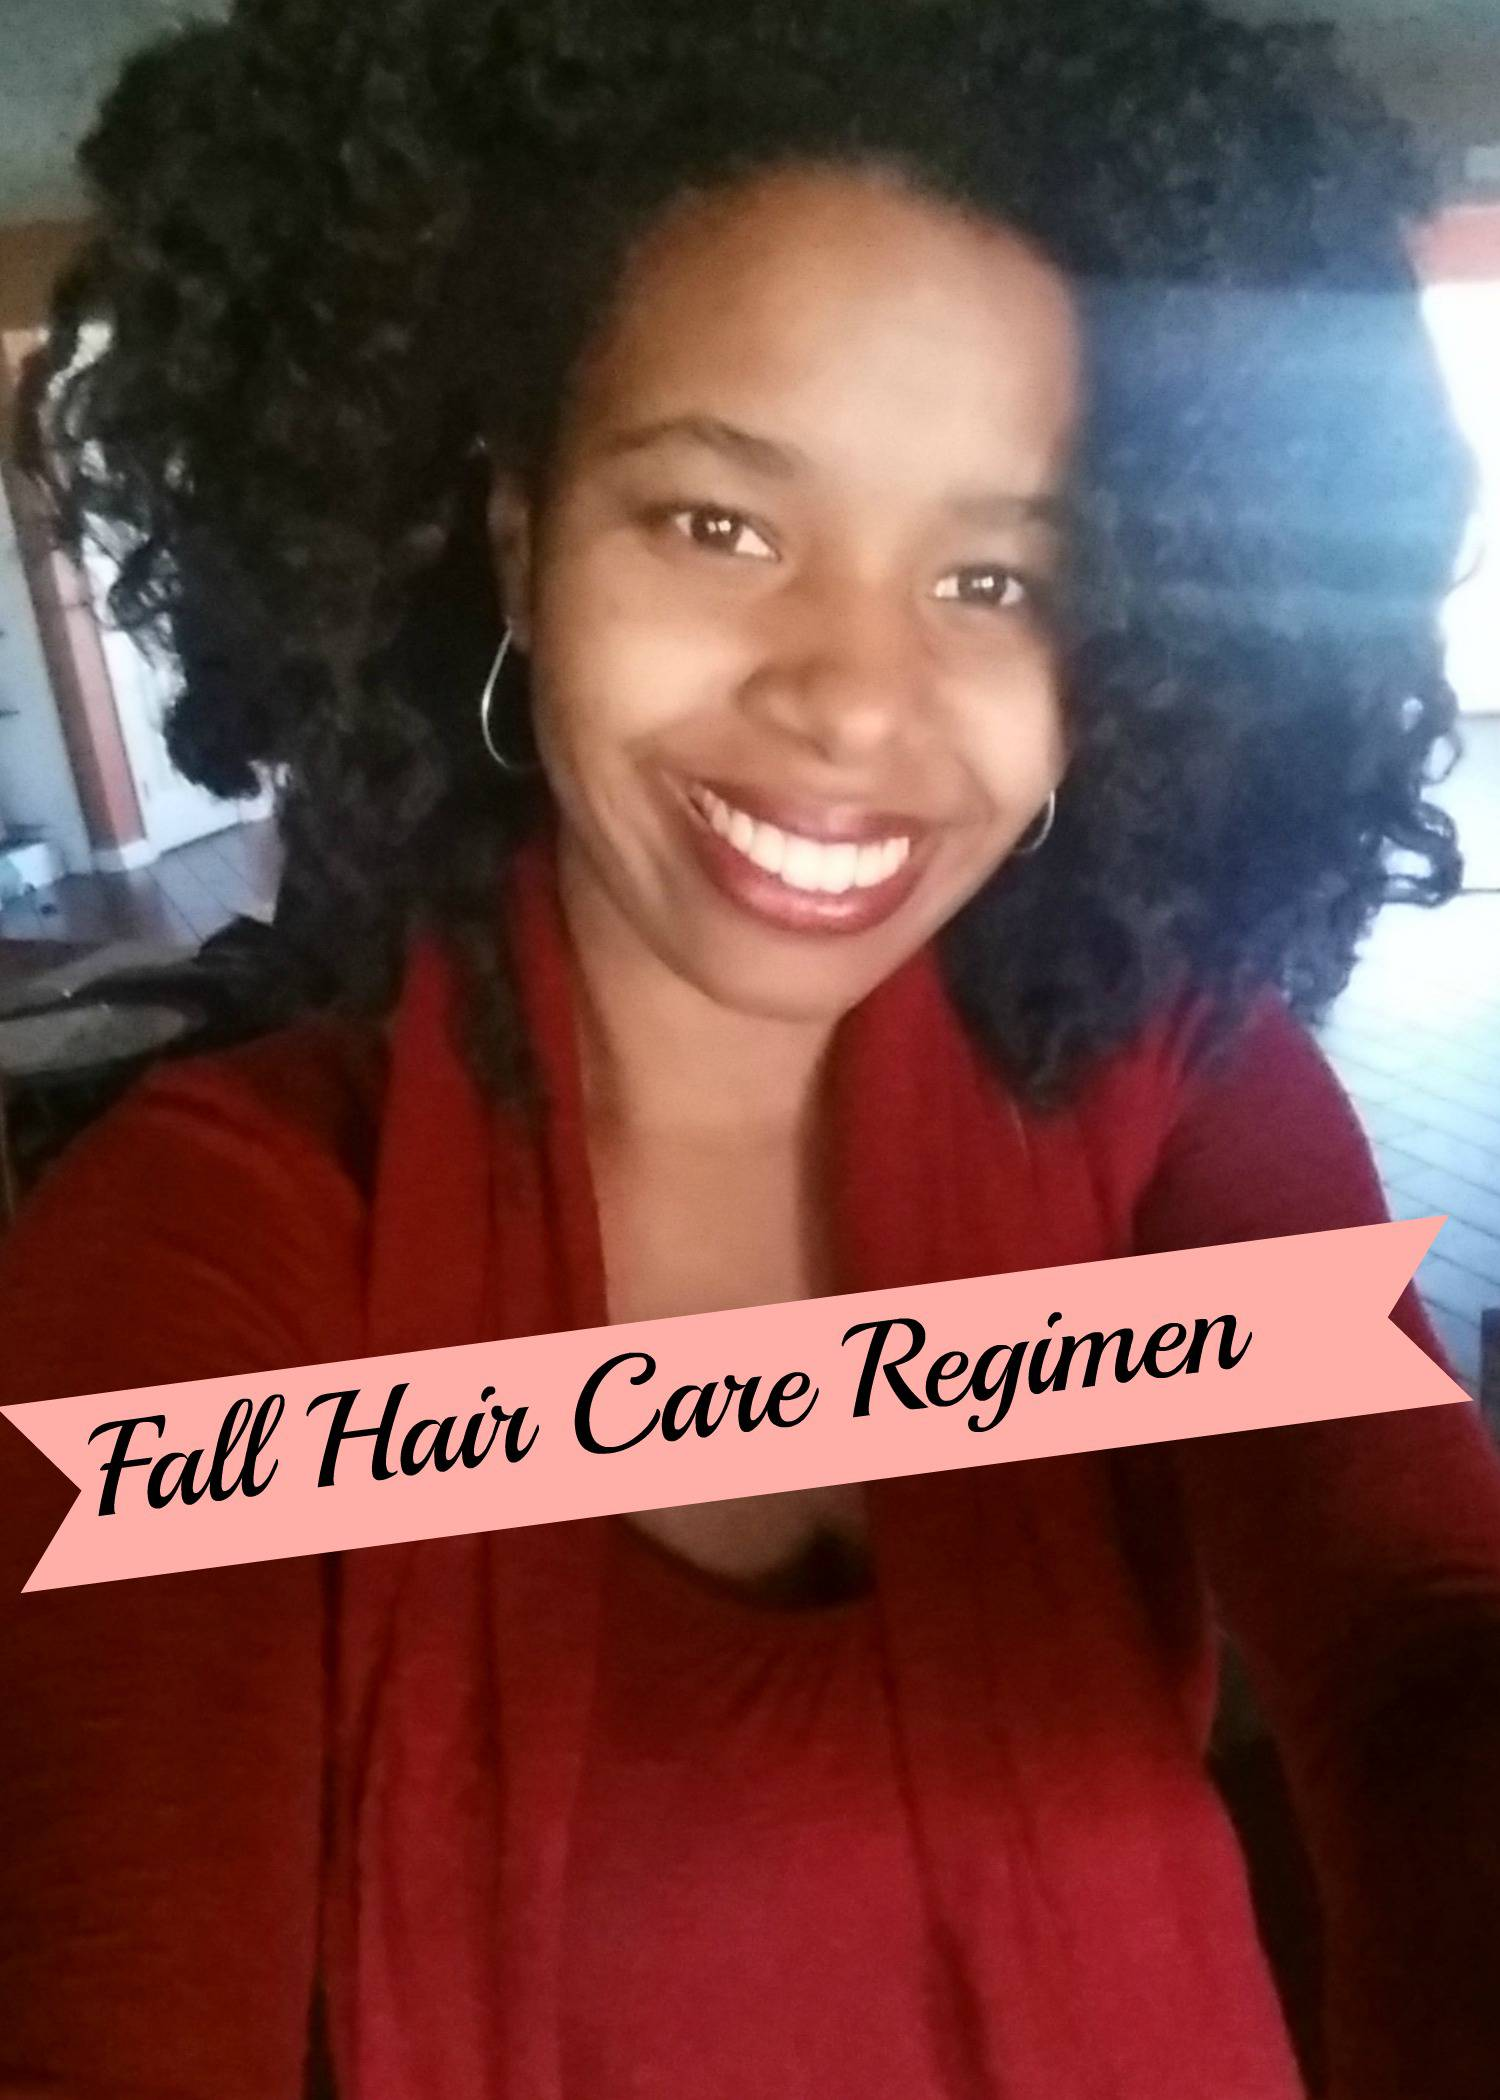 Fall Hair Care Regimen